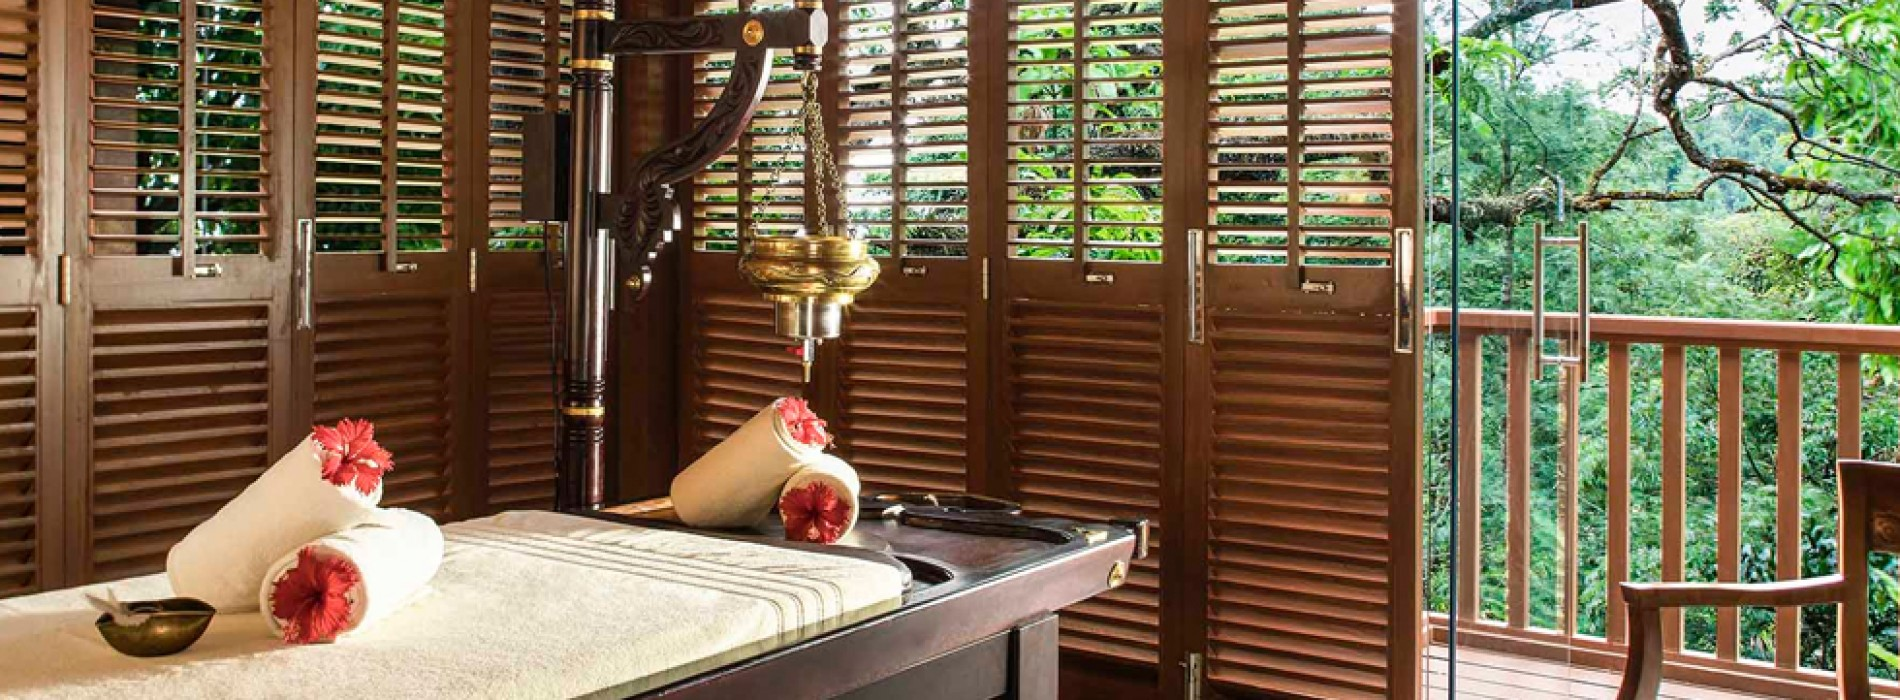 Experience Ayurvedic sojourn at The Tamara Coorg